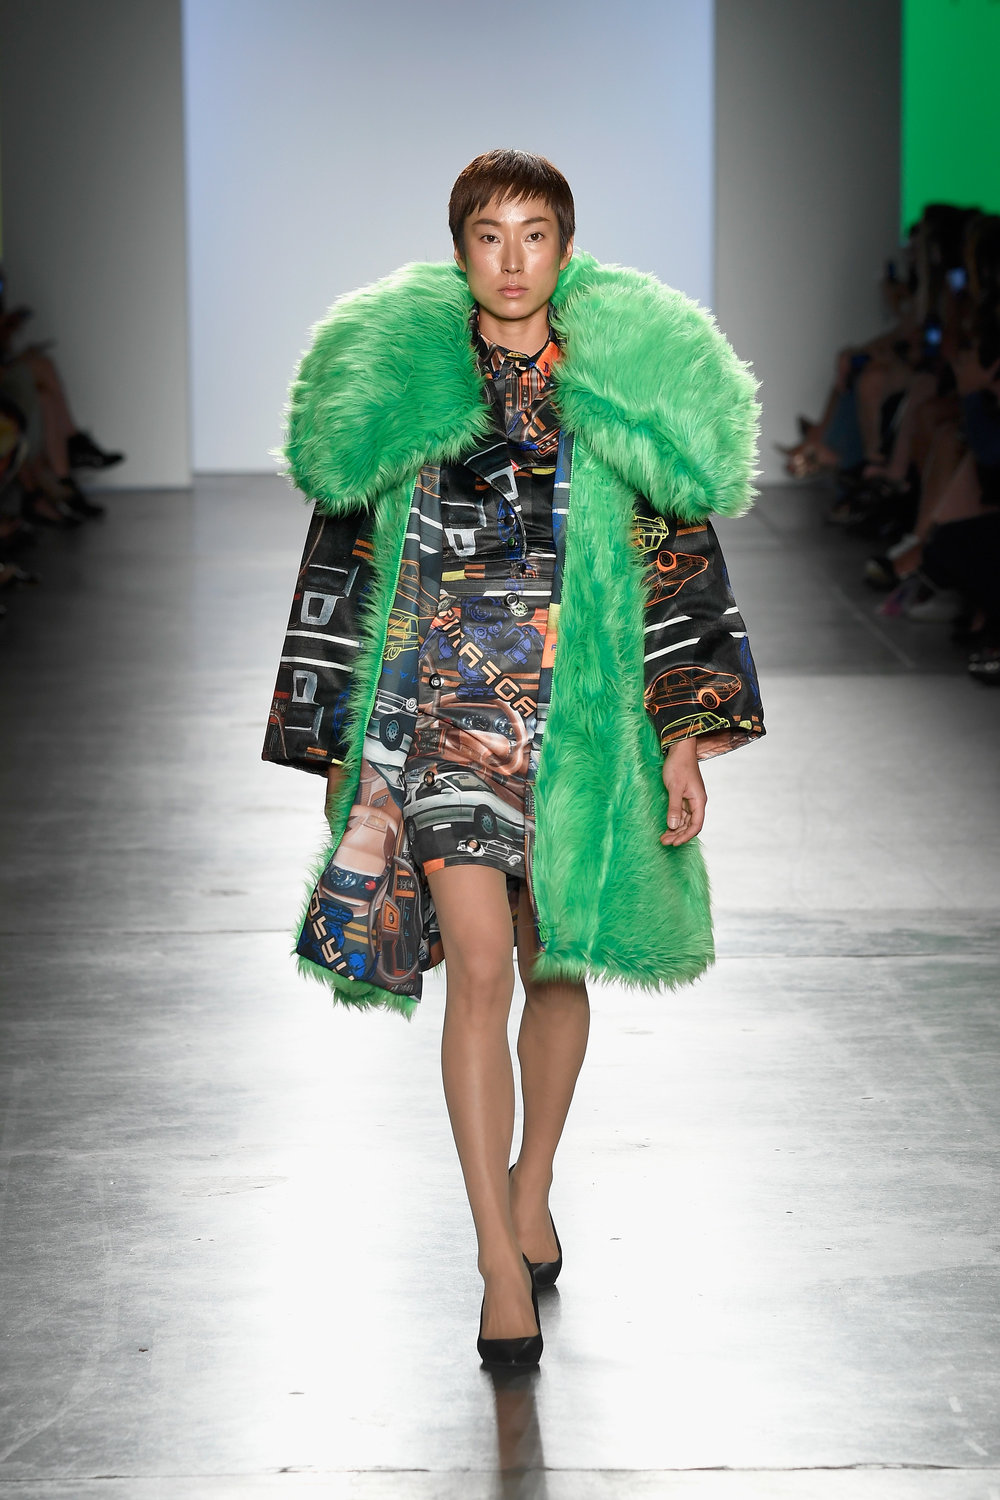 Look 5 for Profanity by LillzKillz Photo by Arun Nevader for Getty Images.jpg